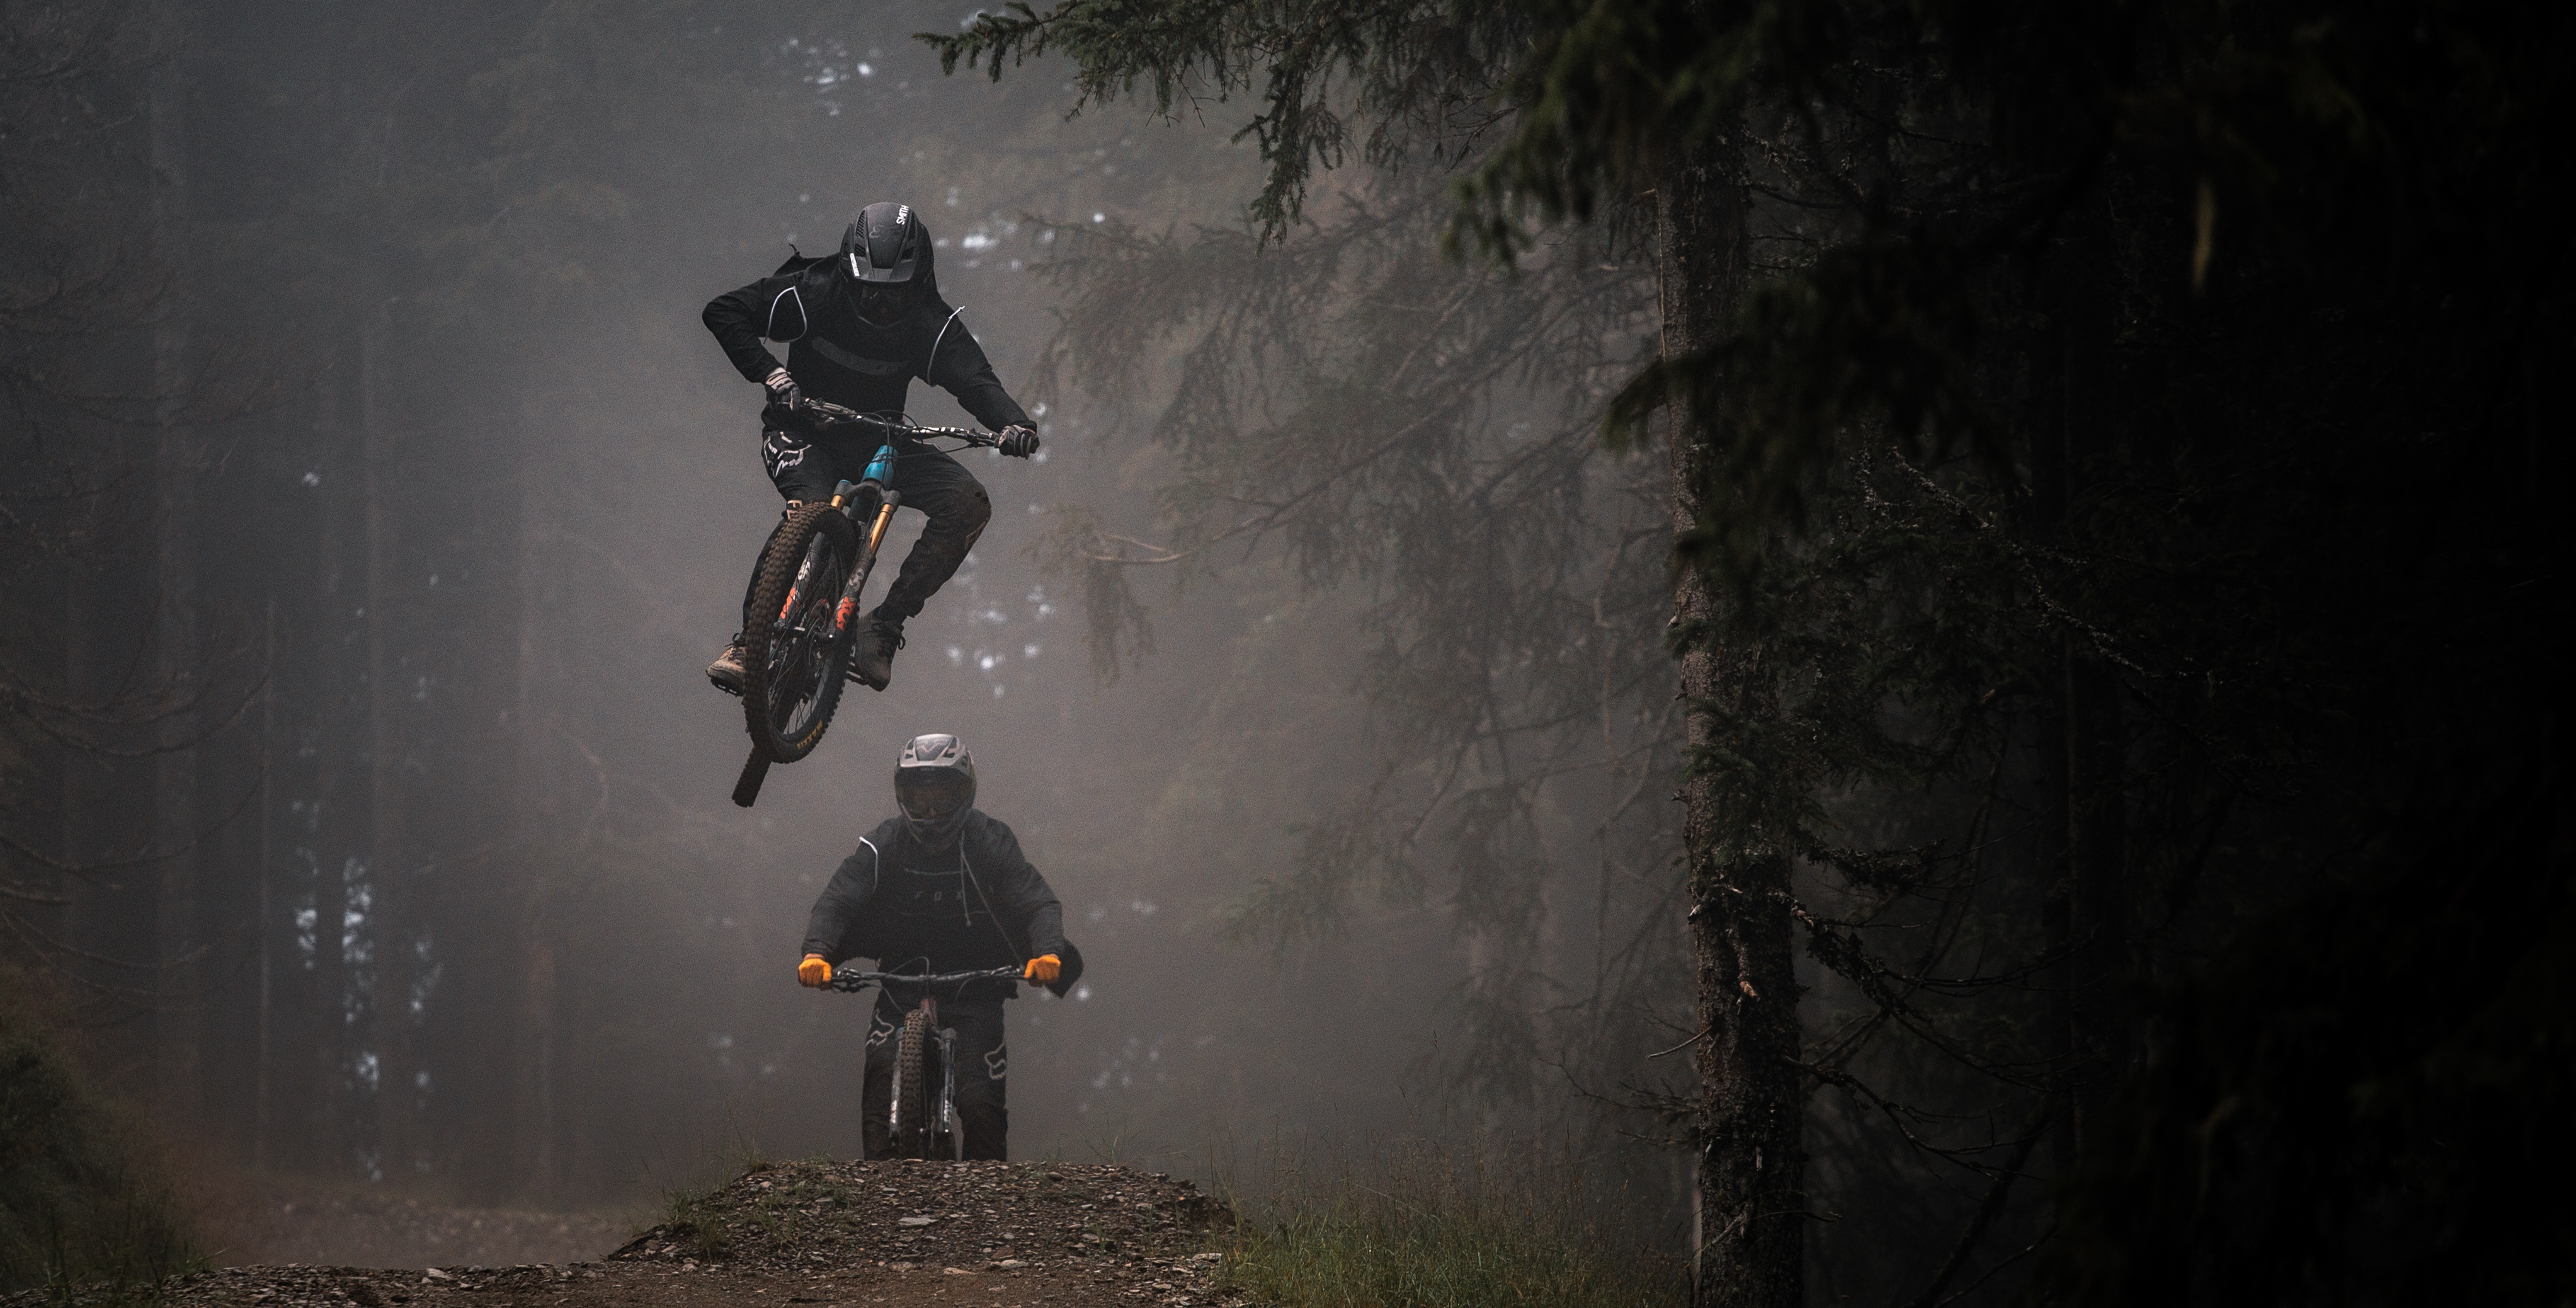 schladming and leogang epic mountain bike tour